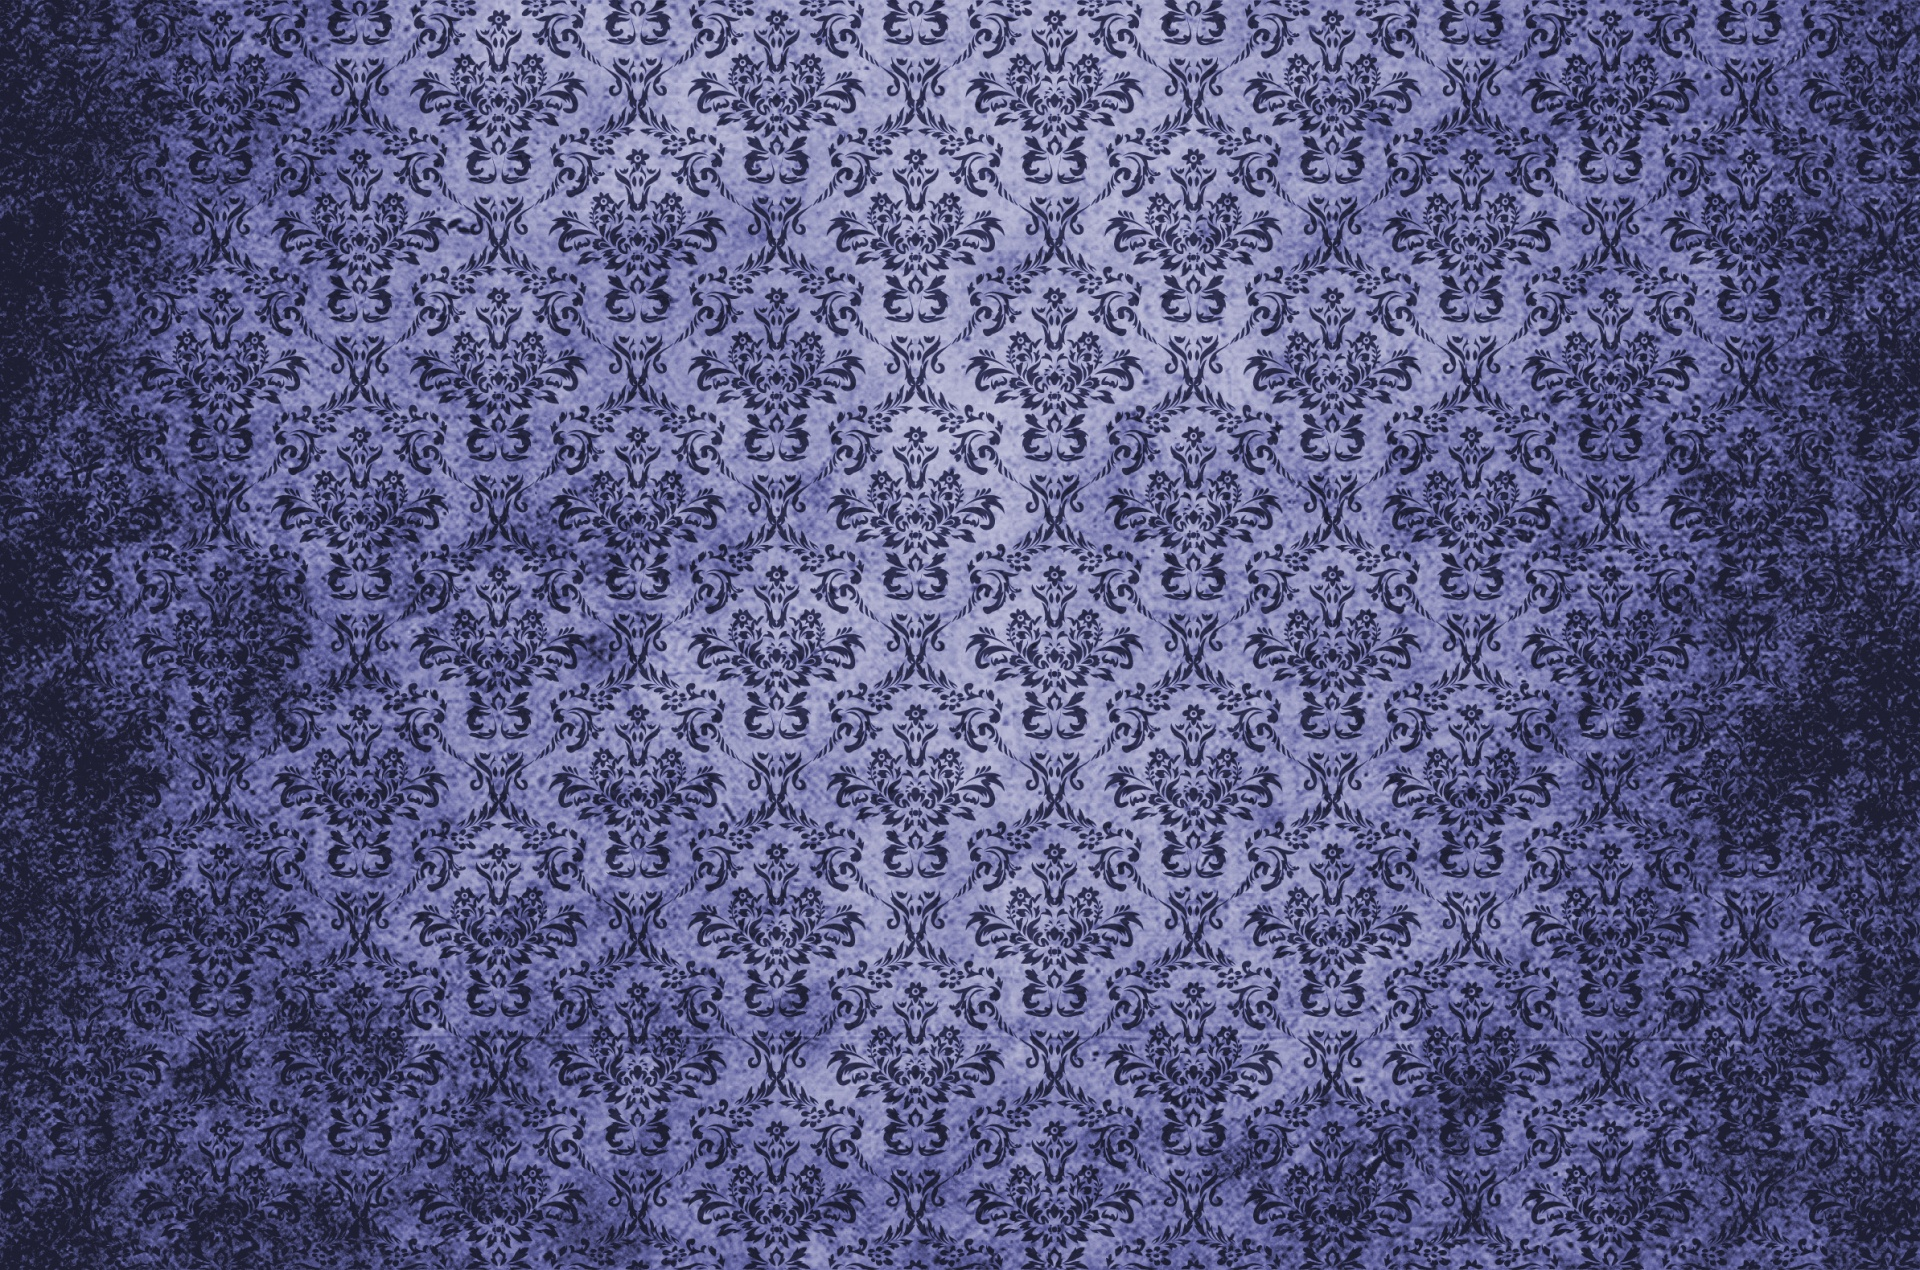 Fall Colors Computer Wallpaper Damask Vintage Background Blue Free Stock Photo Public